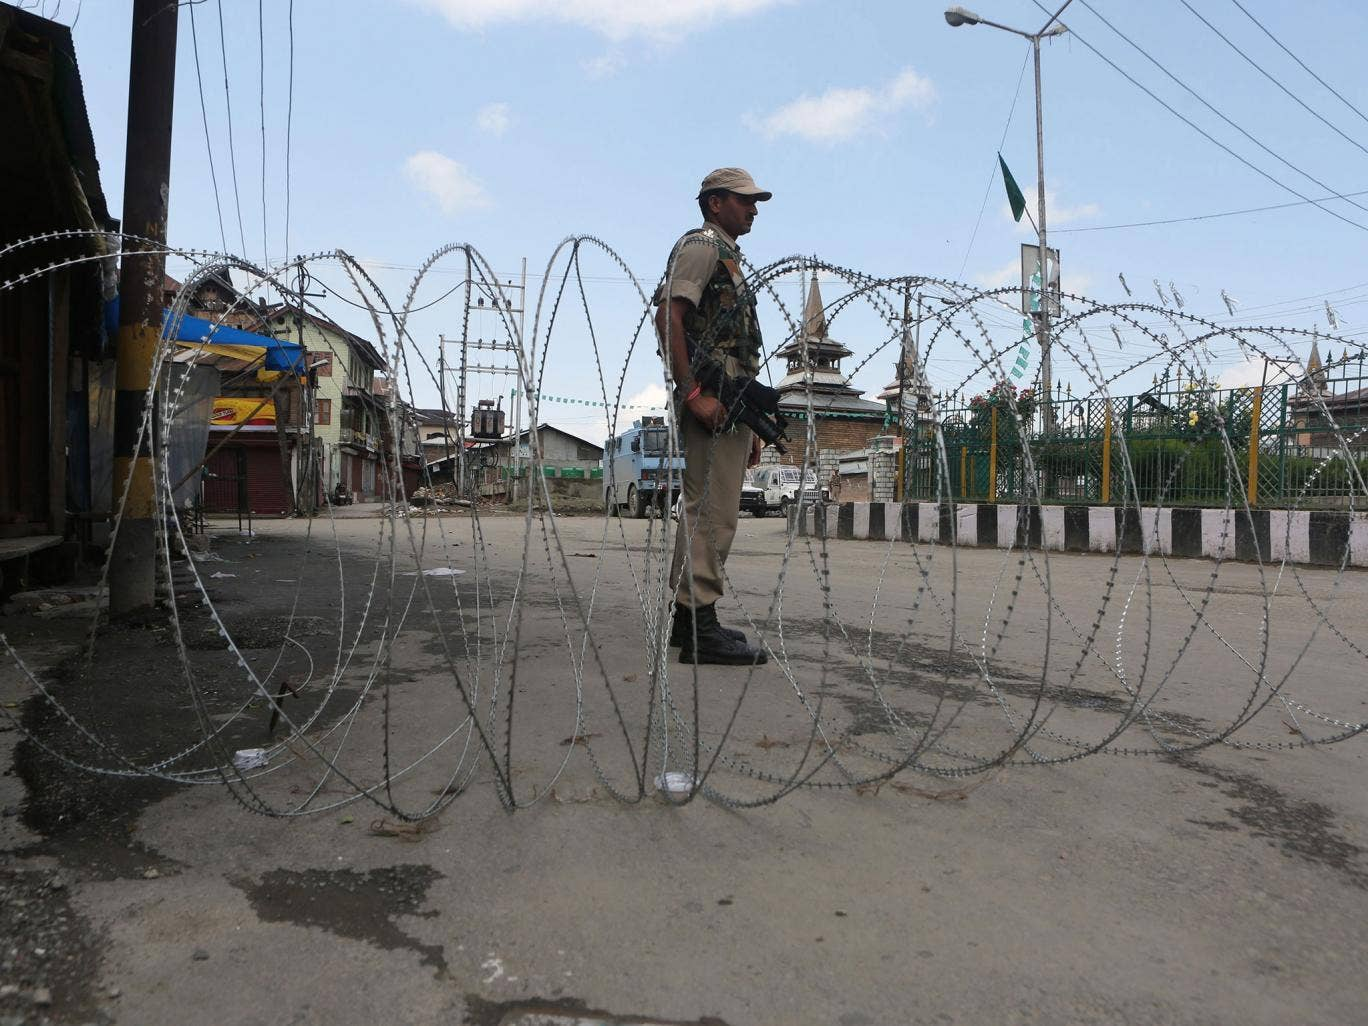 An Indian paramilitary soldier stands guard near barbed wire setup as barricade during restrictions in downtown area of Srinaga